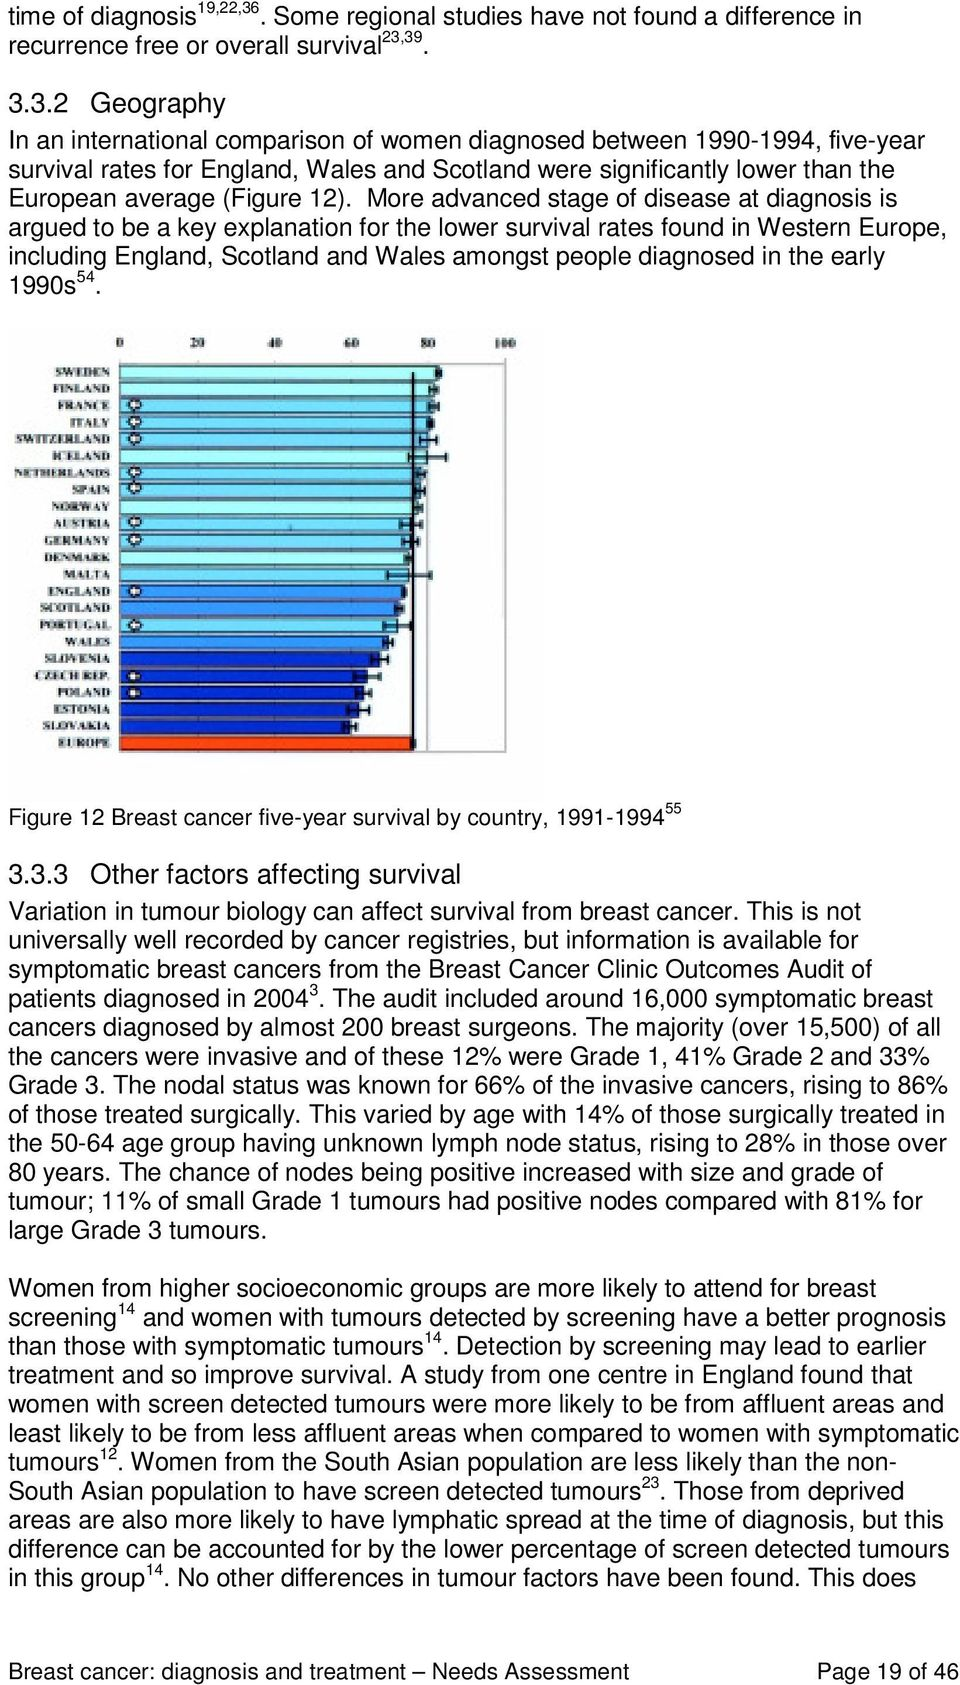 39. 3.3.2 Geography In an international comparison of women diagnosed between 199-1994, five-year survival rates for England, Wales and Scotland were significantly lower than the European average